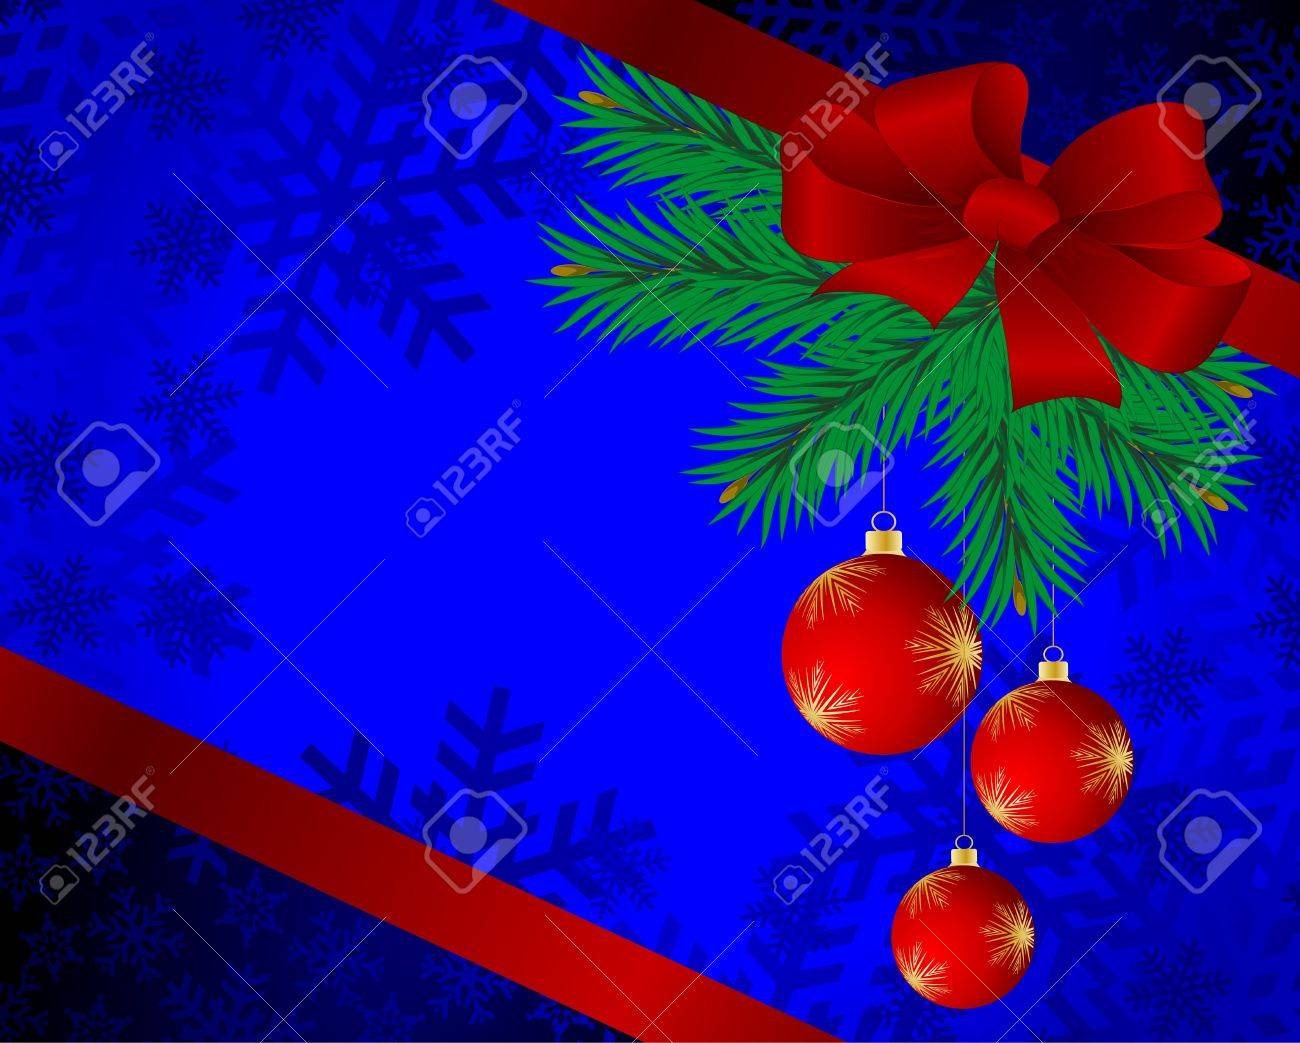 Christmas background with spheres and fur-tree branches. Stock Vector - 16267409